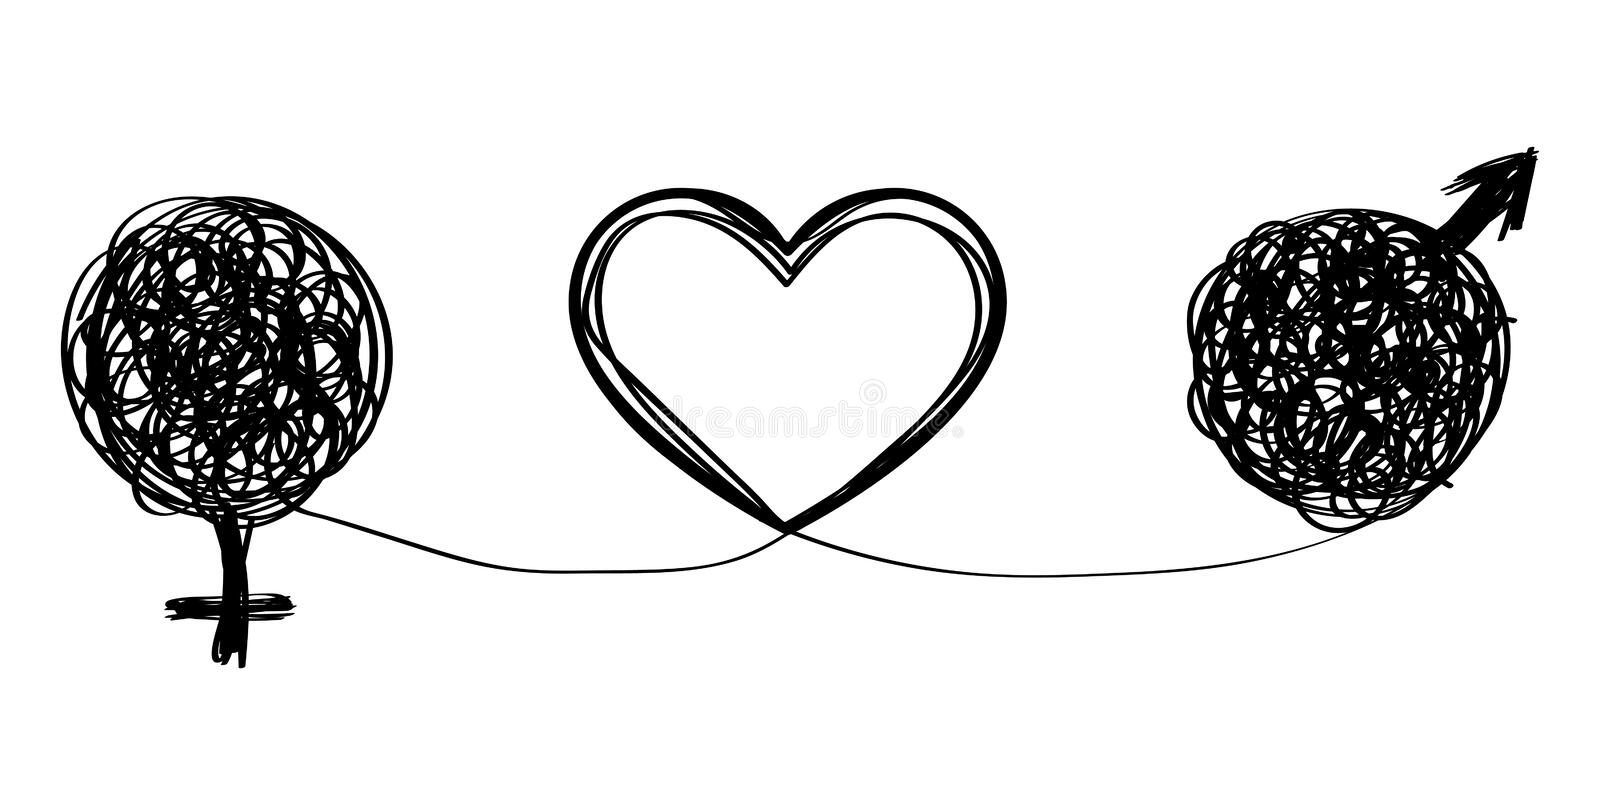 Love and relationships. Vector illustration with symbol of man and woman and their relationship in love. Love and relationships vector illustration